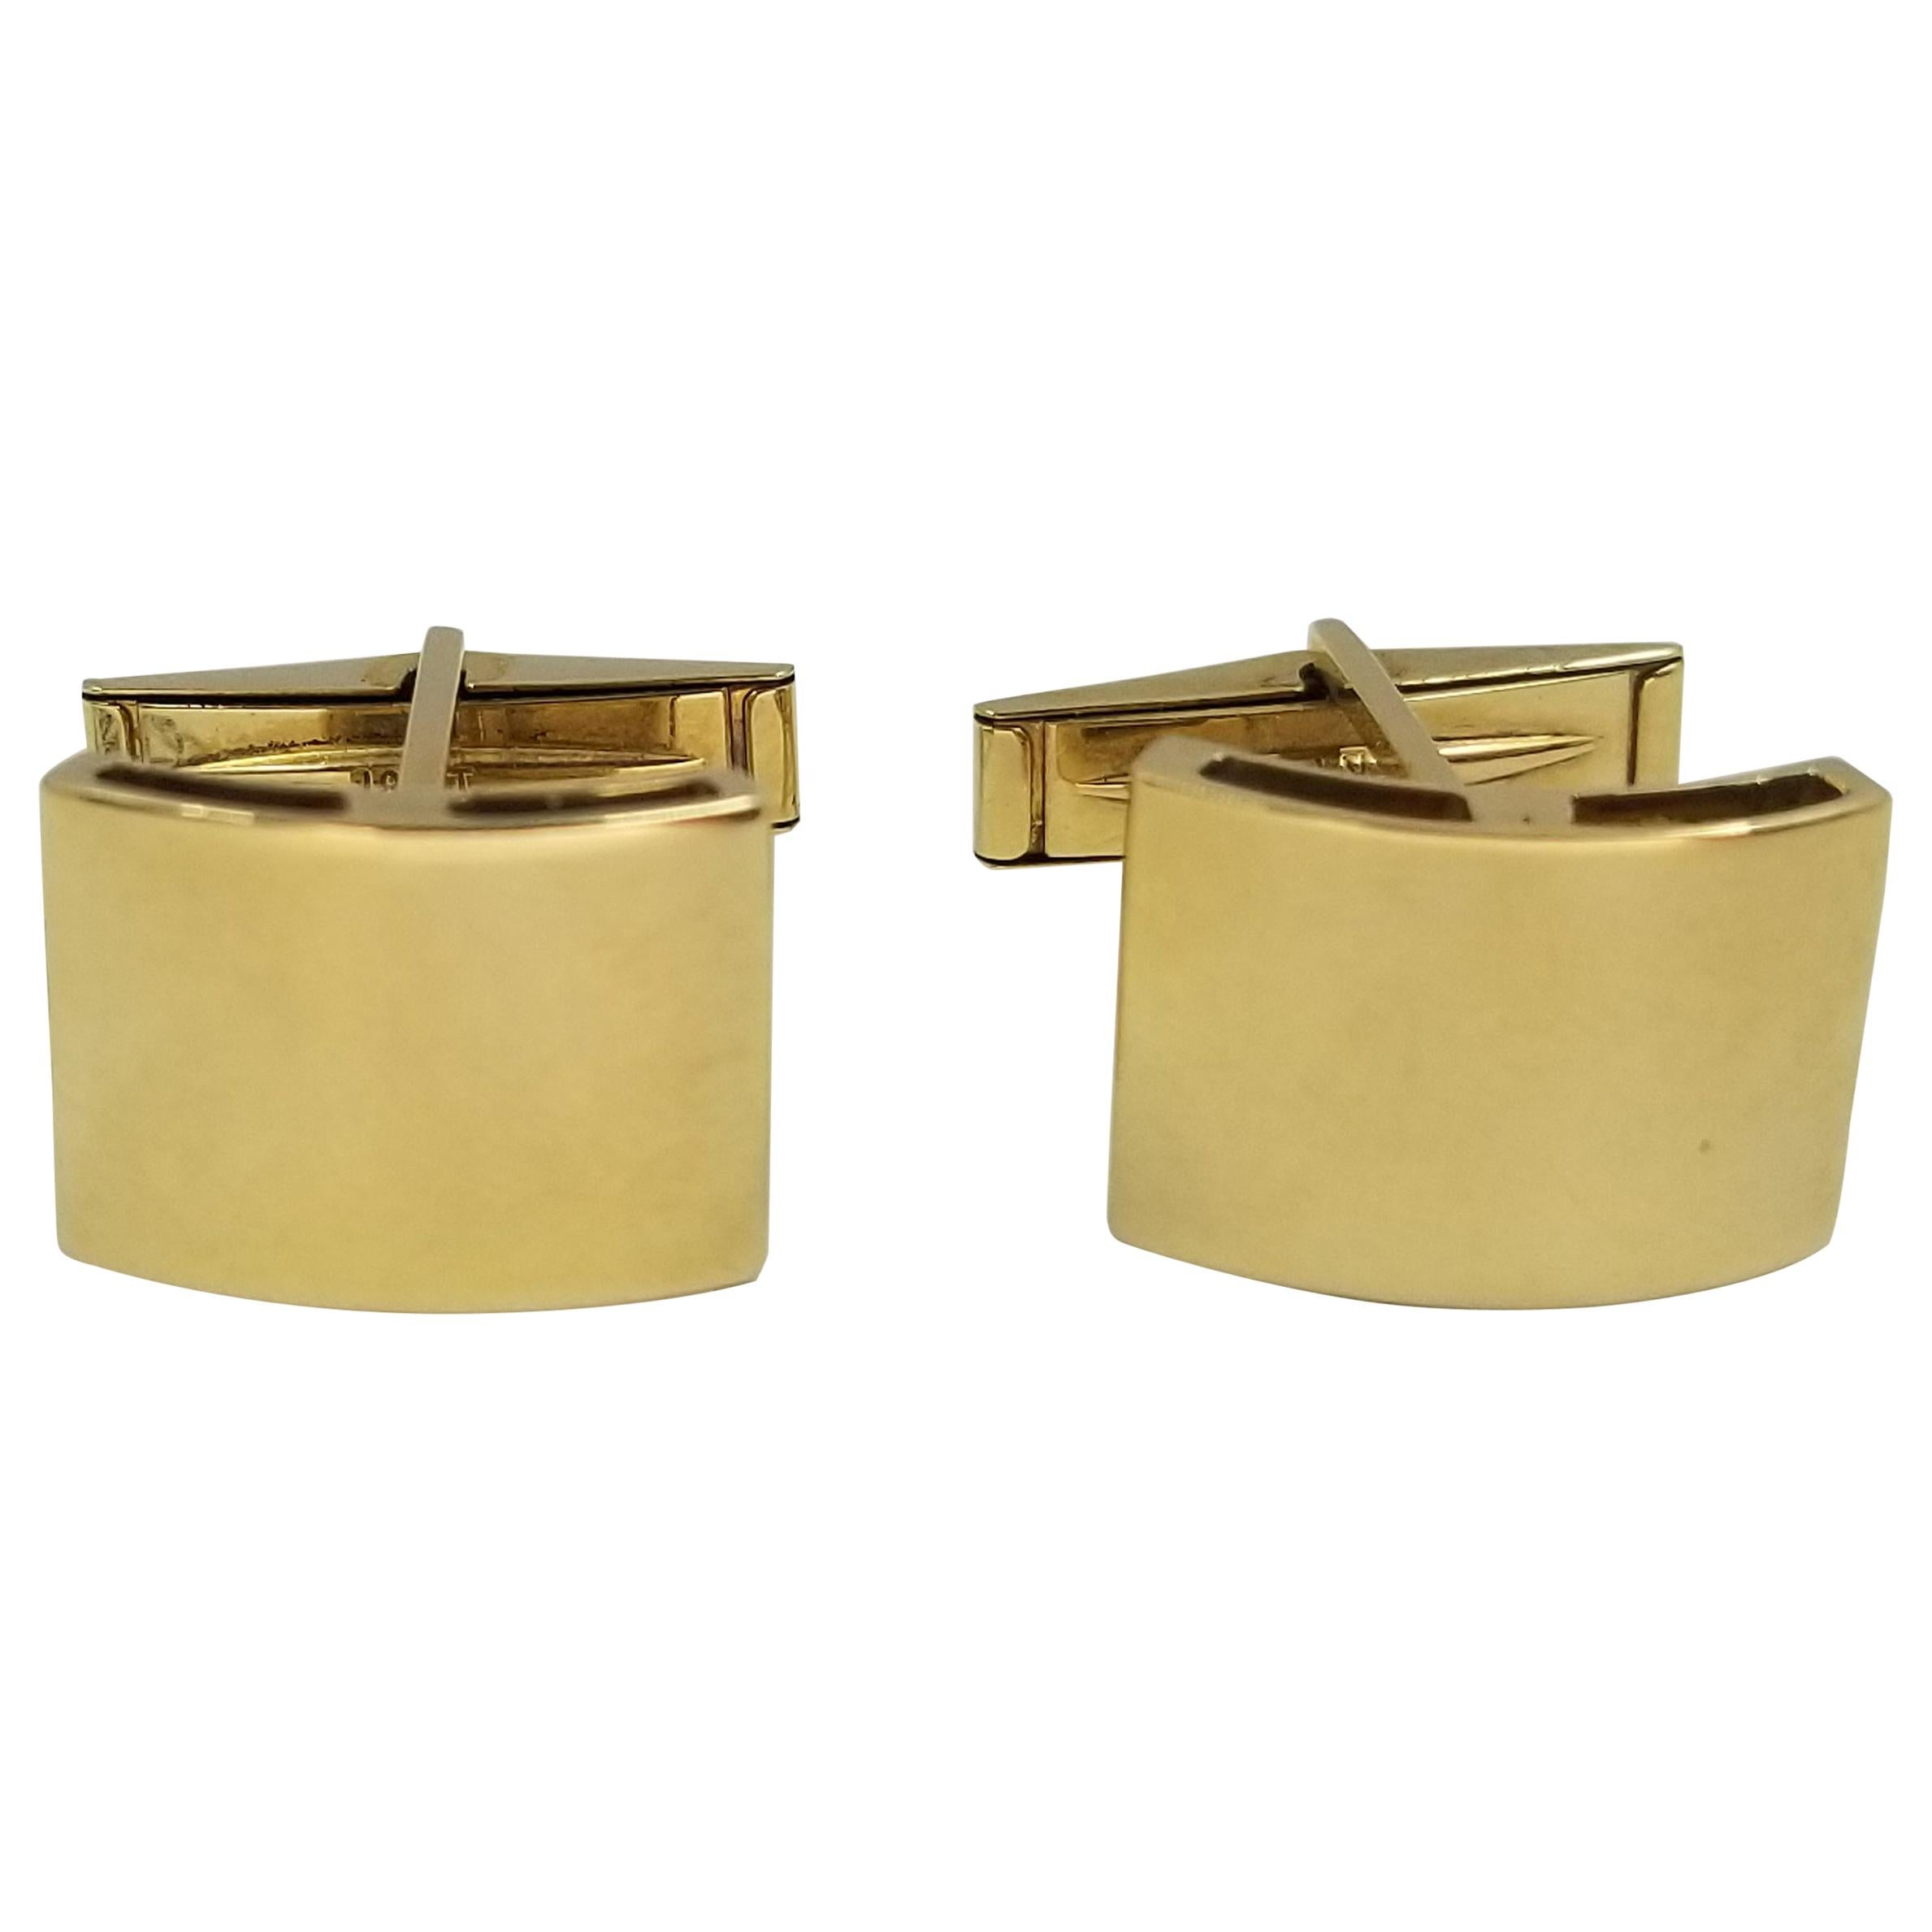 Saint Paul City United States Gold-tone Flag Cufflinks Engraved Box